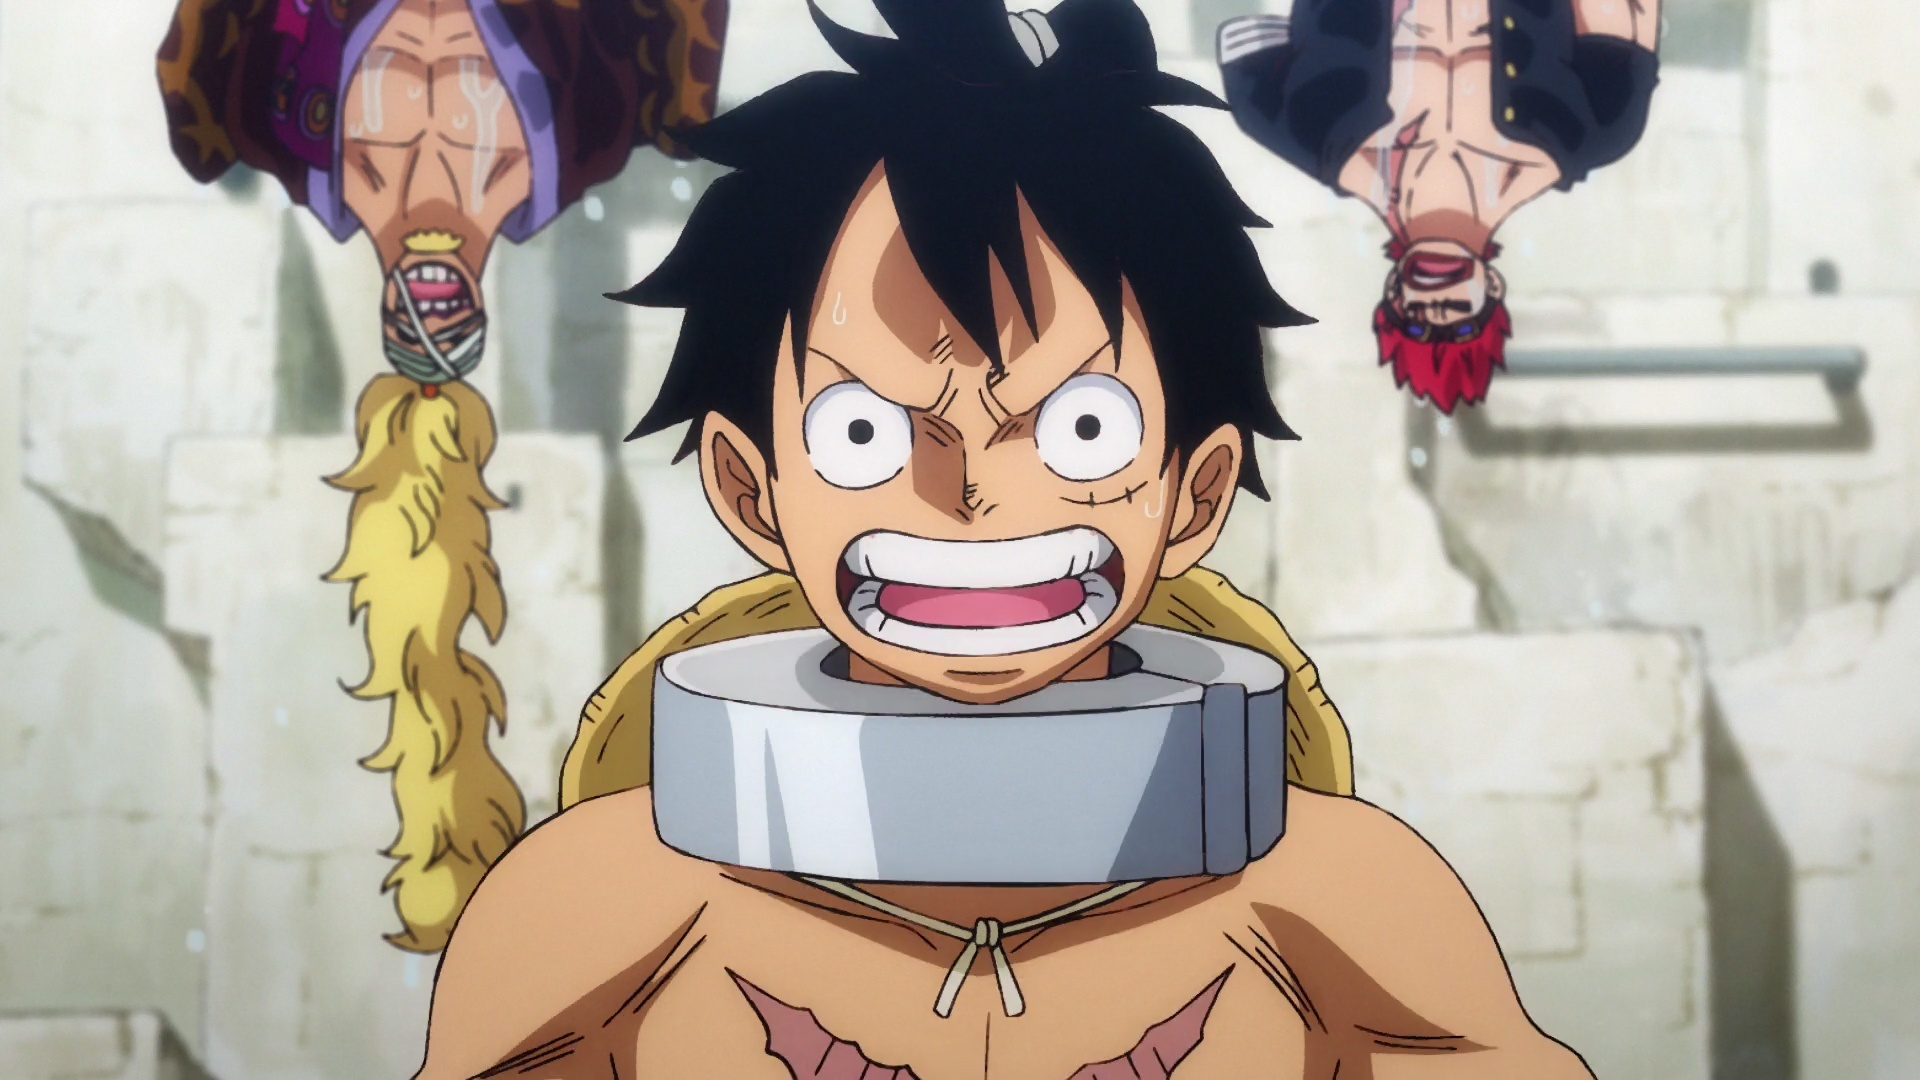 ONE PIECE 943 VOSTFR SD/HD/HD 10BITS/FHD News background